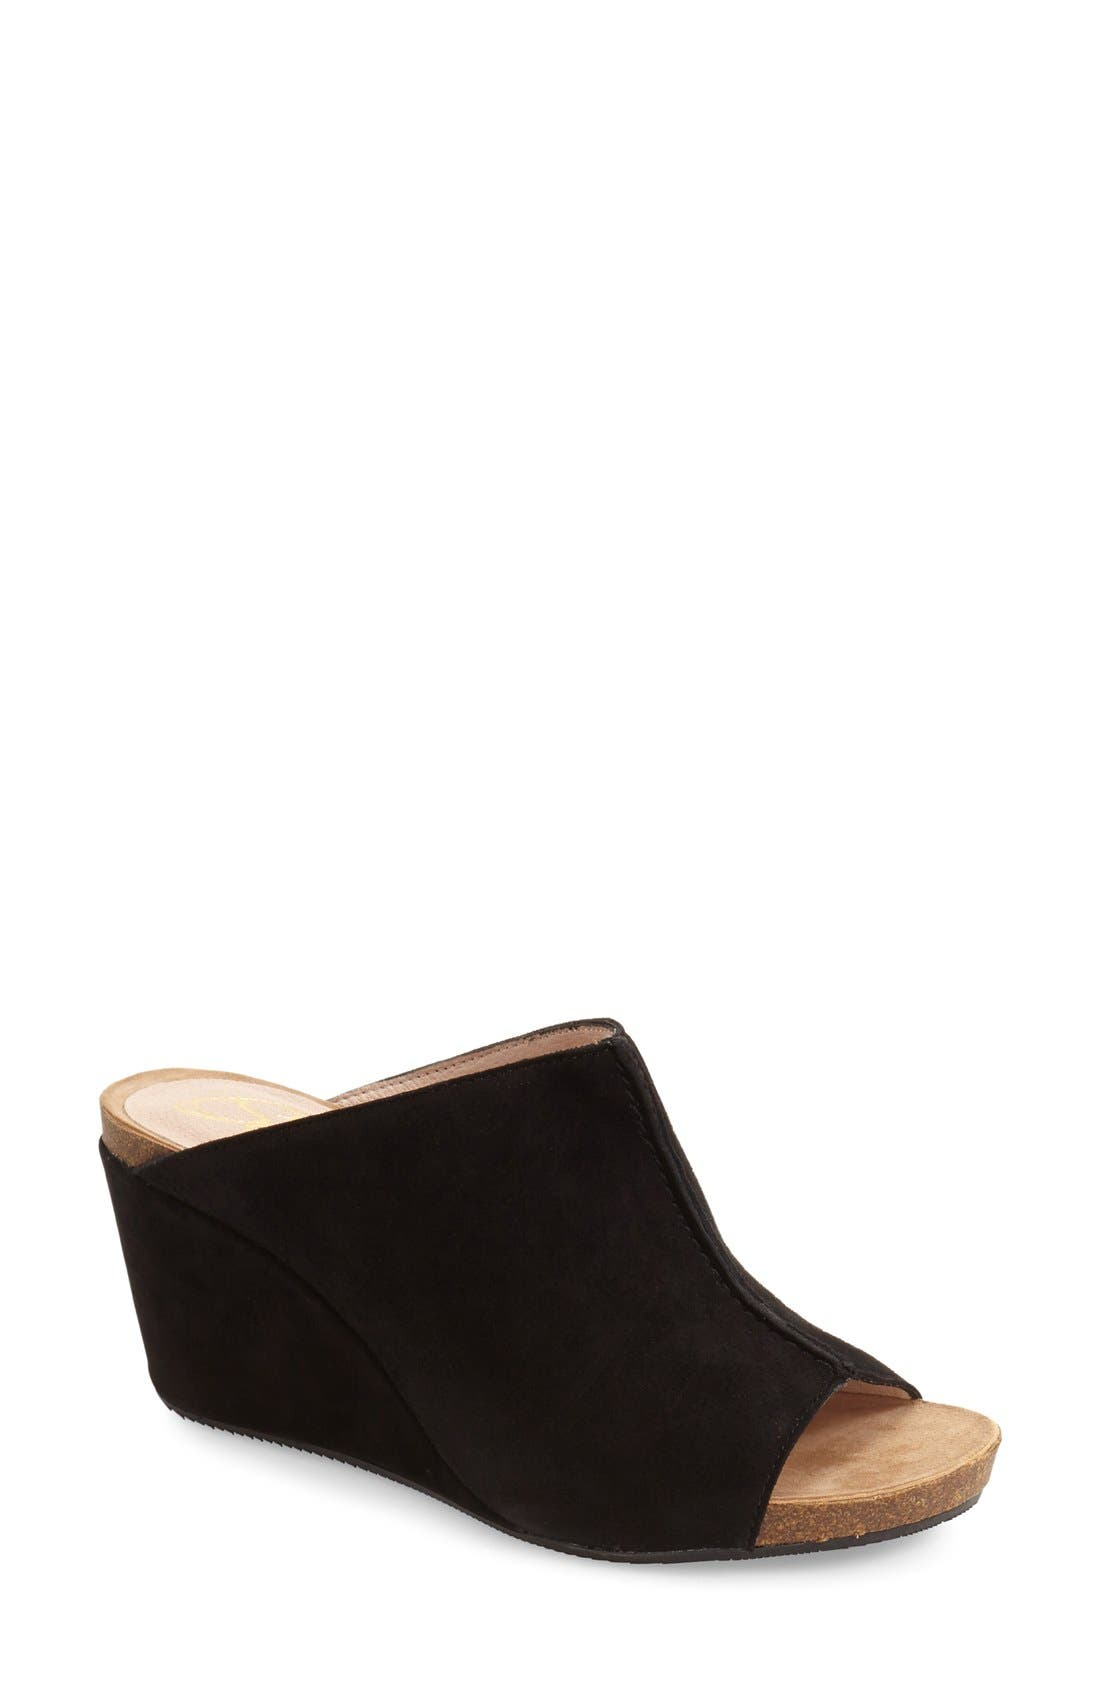 Alternate Image 1 Selected - Sudini 'Bailey' Suede Wedge (Women)